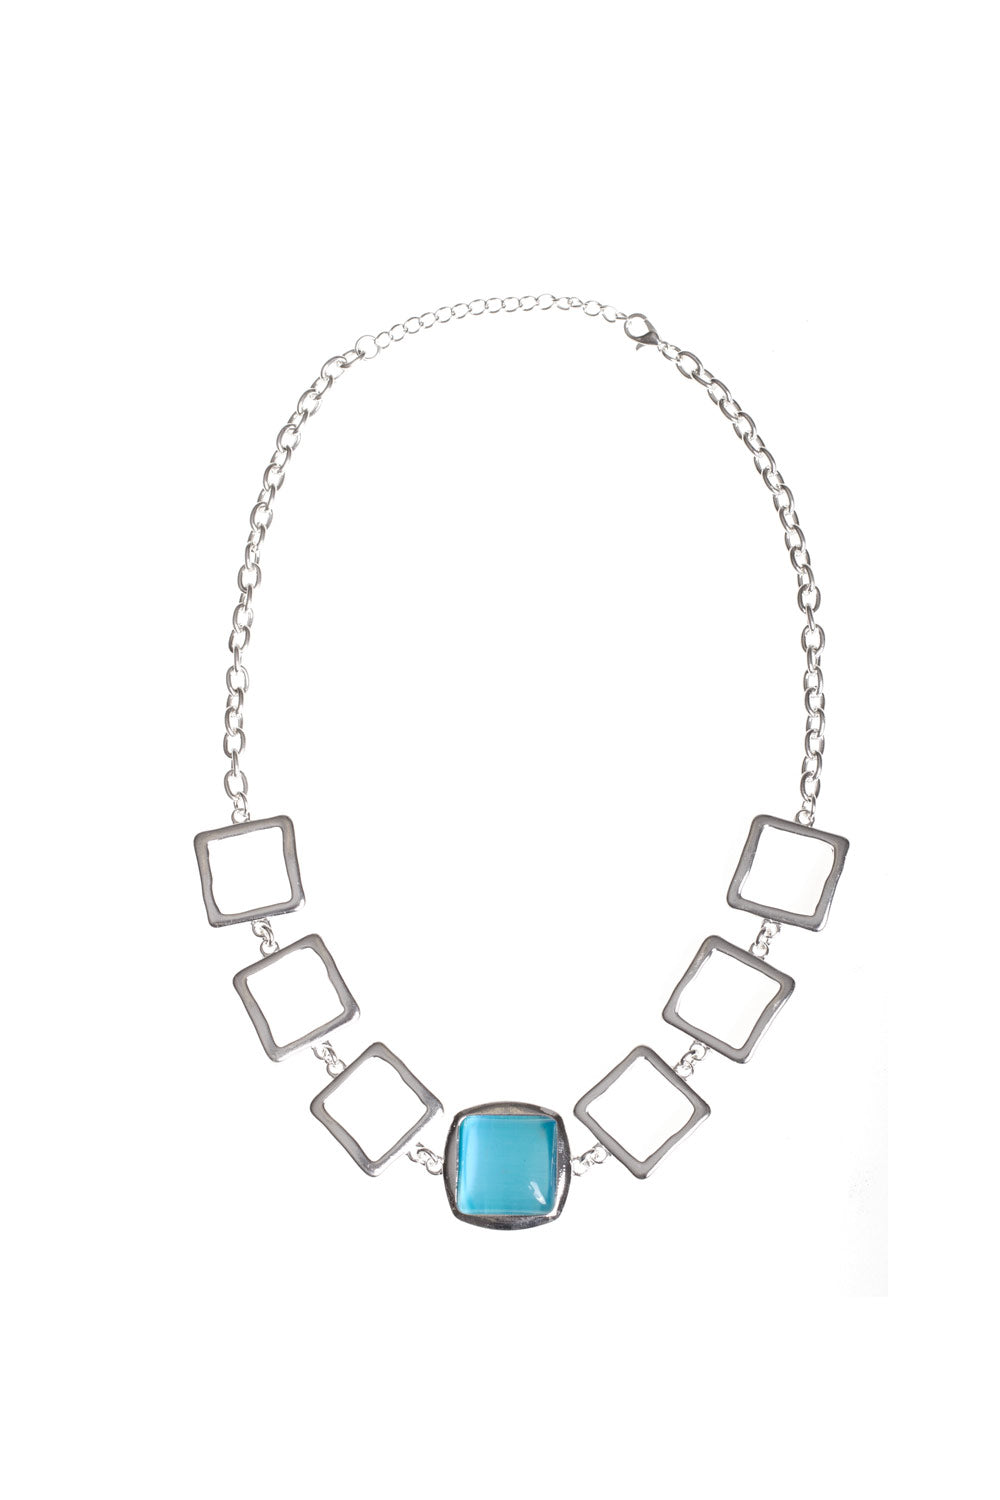 Type 4 Cyan Square Necklace